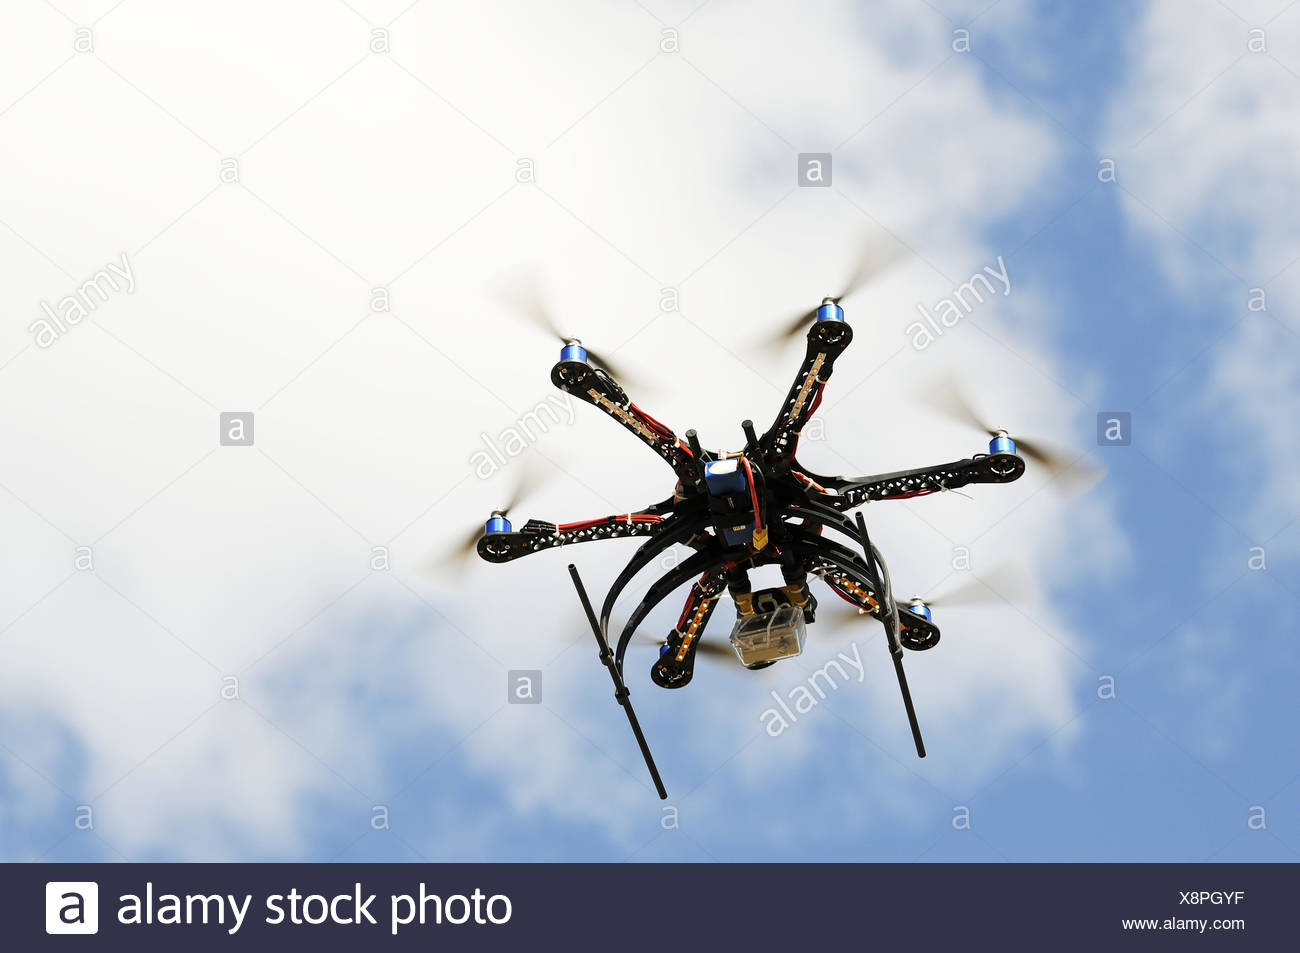 Hexacopter aircraft model in flight over blue sky - Stock Image